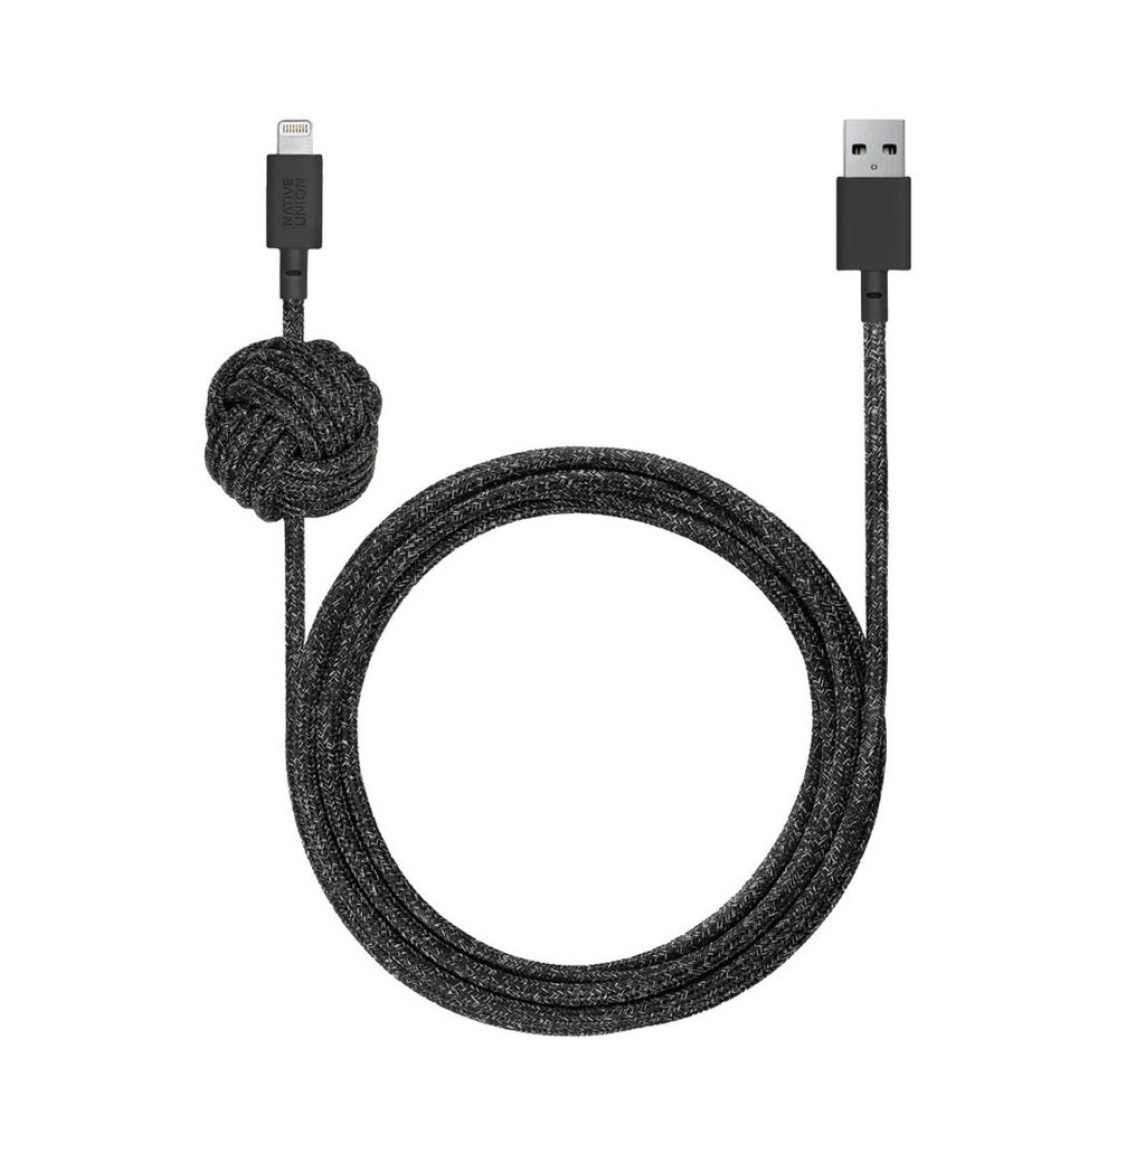 Native Union Night Cable Apple Lightning Cosmos 3m